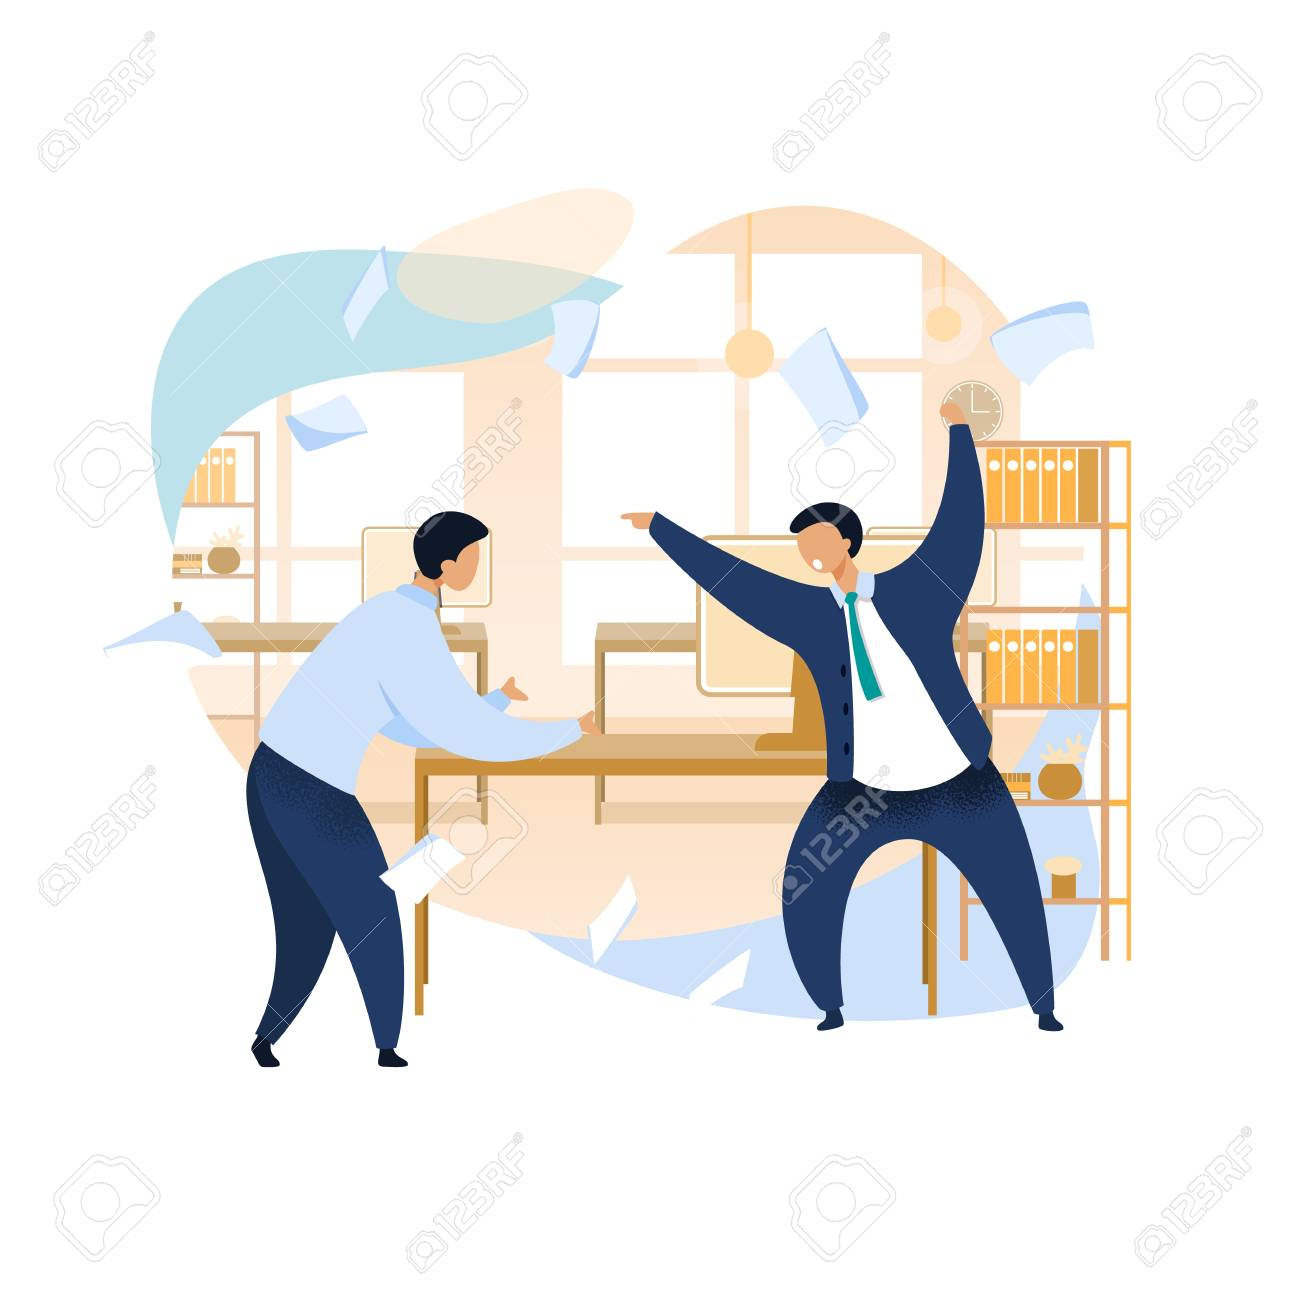 Angry Boss Shouting at Employee Vector Clipart. Work Rush, Office...